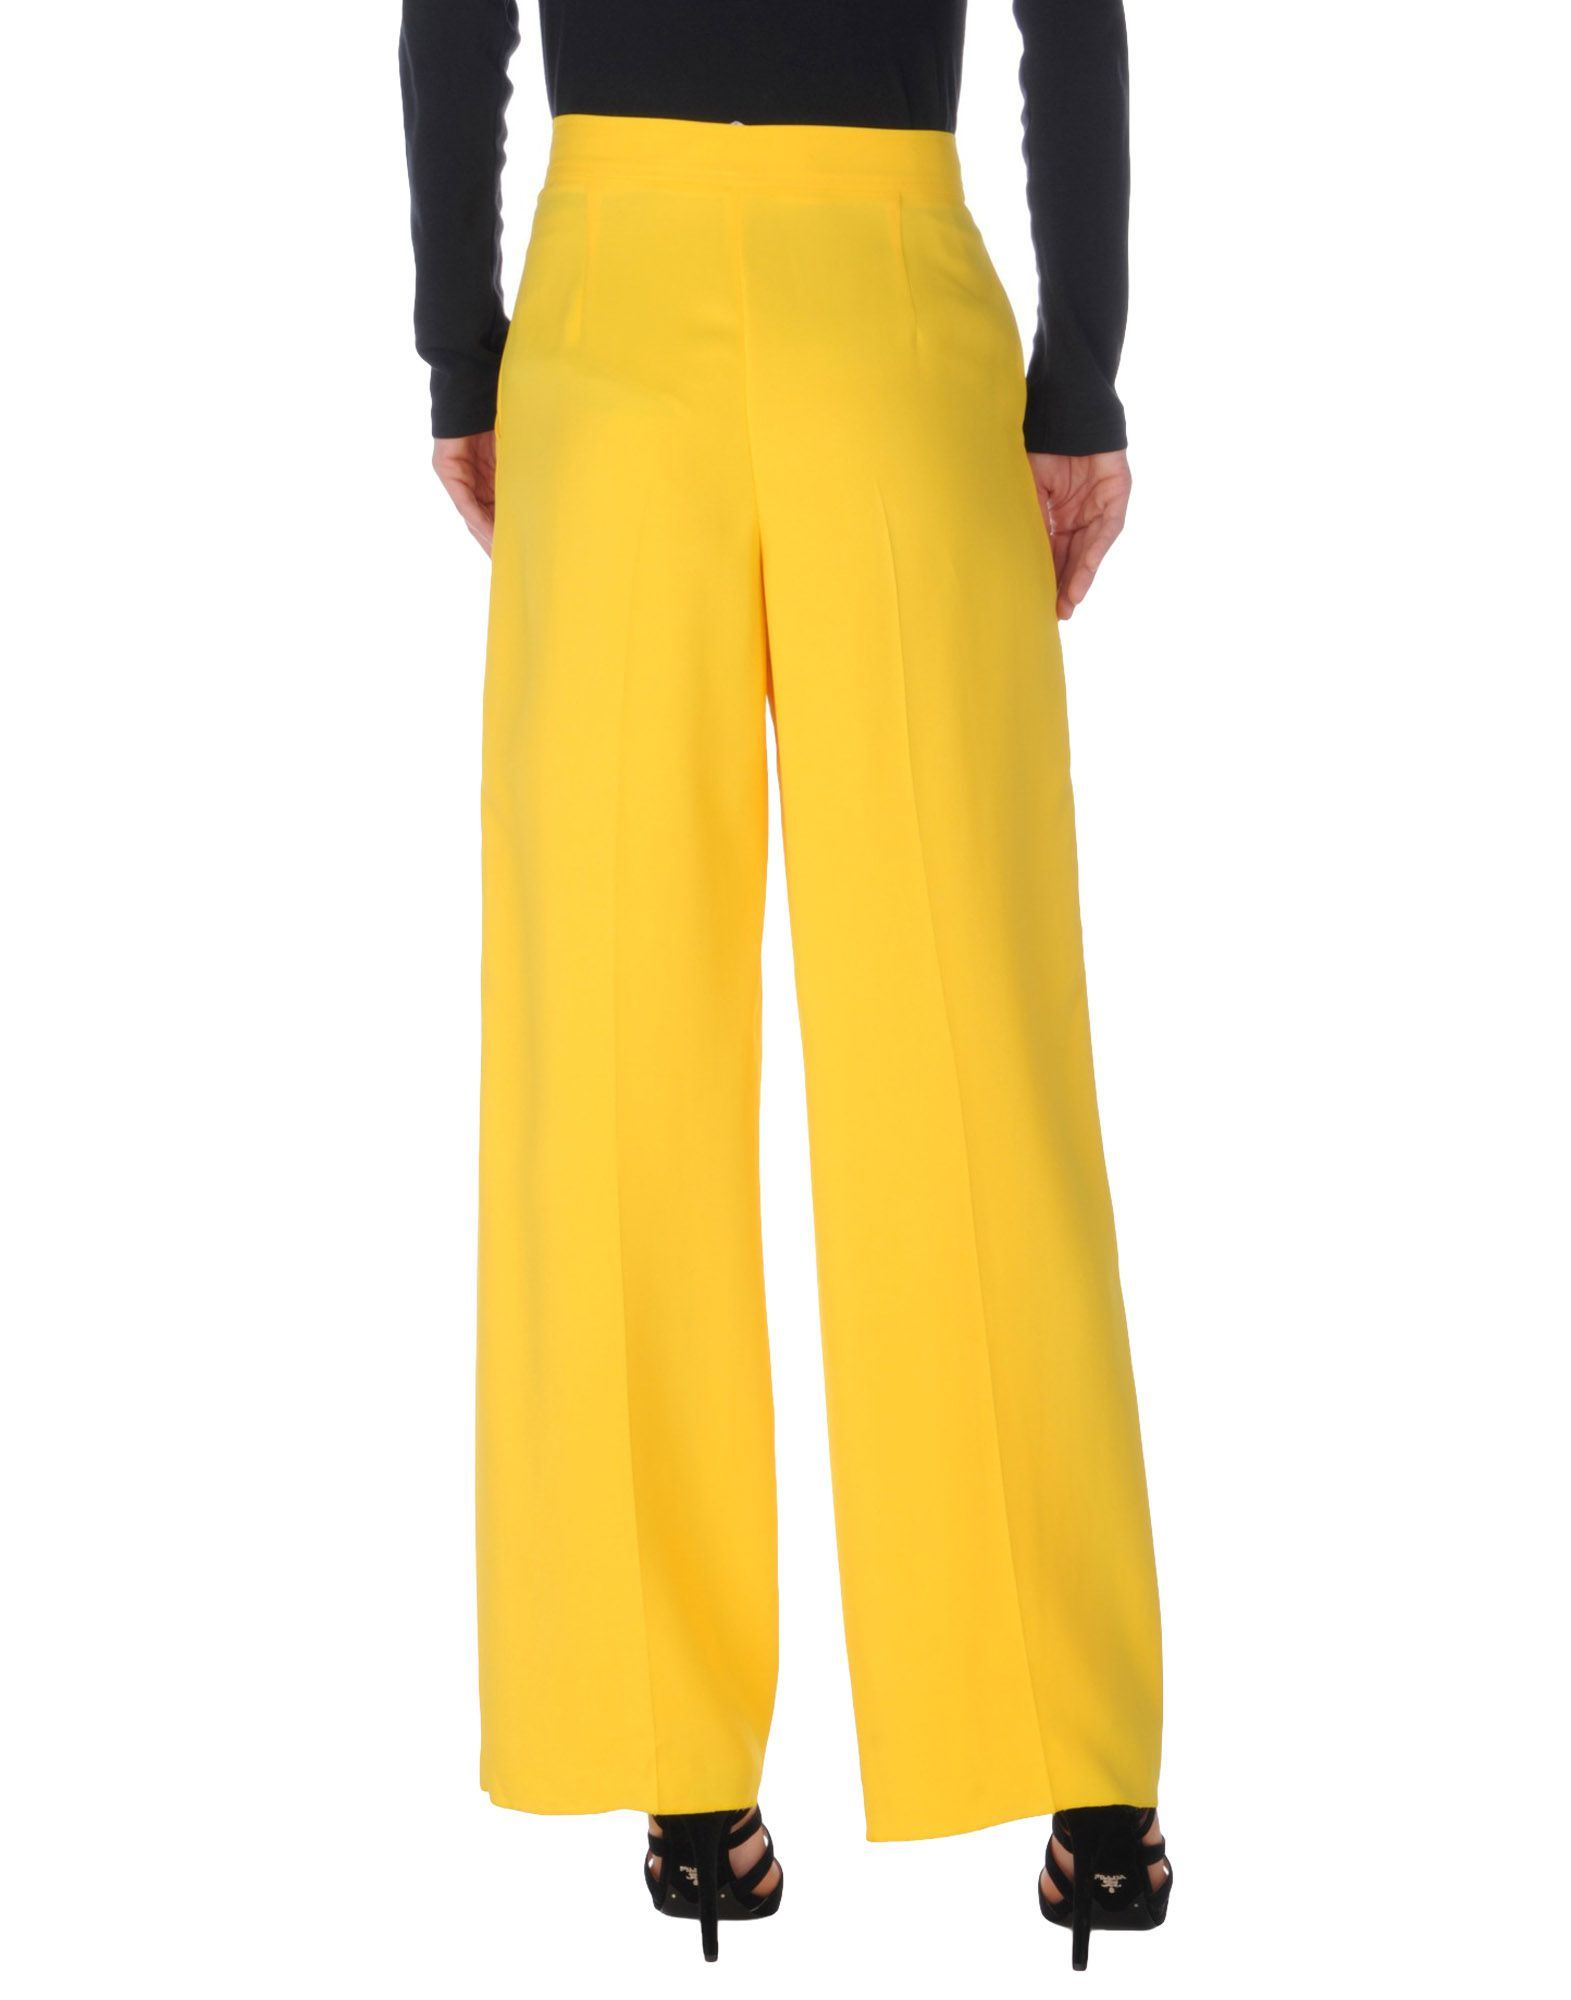 M Missoni Yellow Crepe Wide Leg Trousers